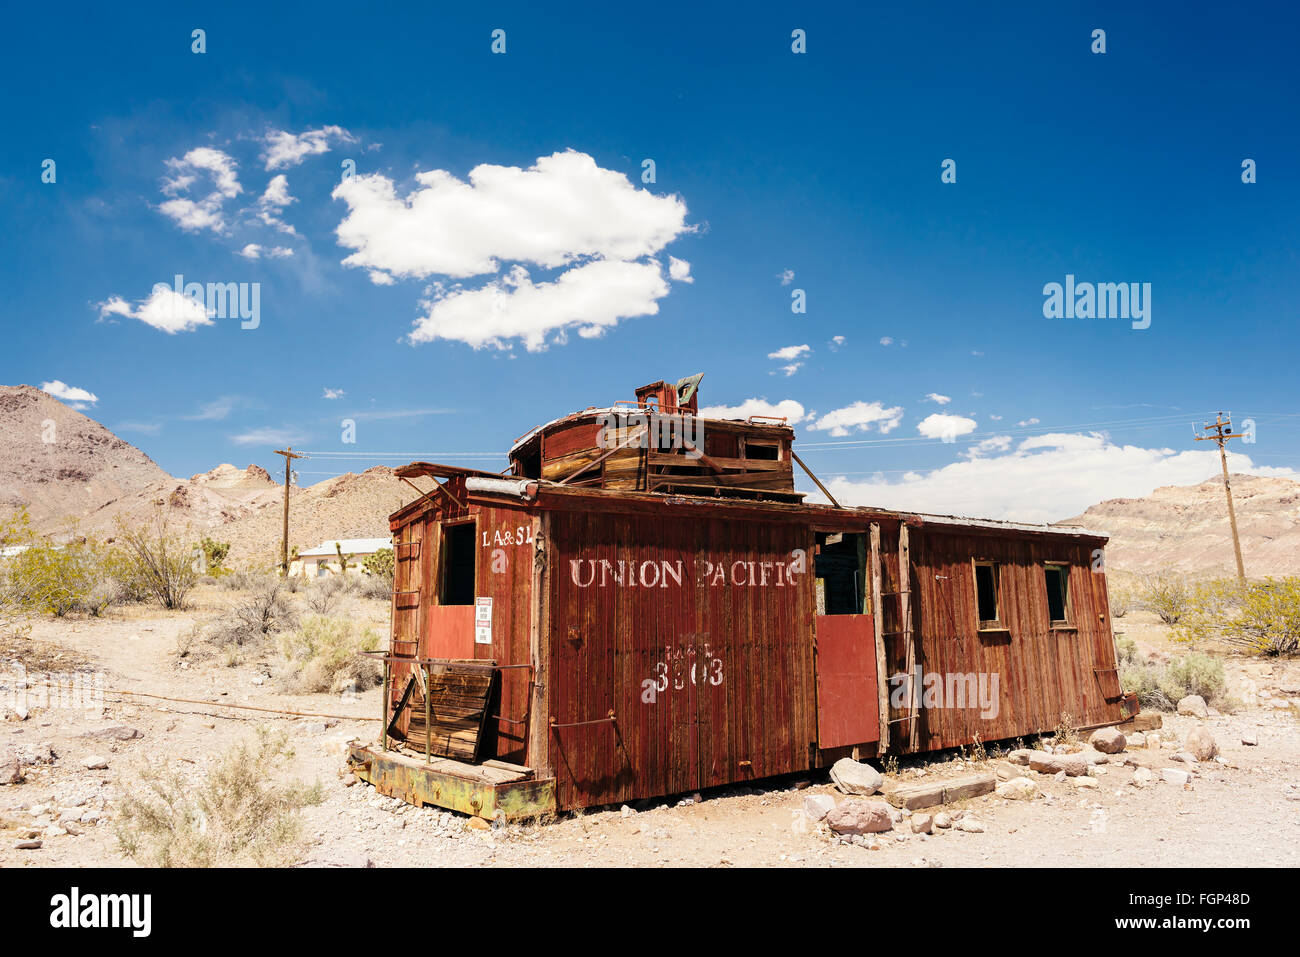 An abandoned railroad car in the desert ghost town of Rhyolite, Nevada - Stock Image